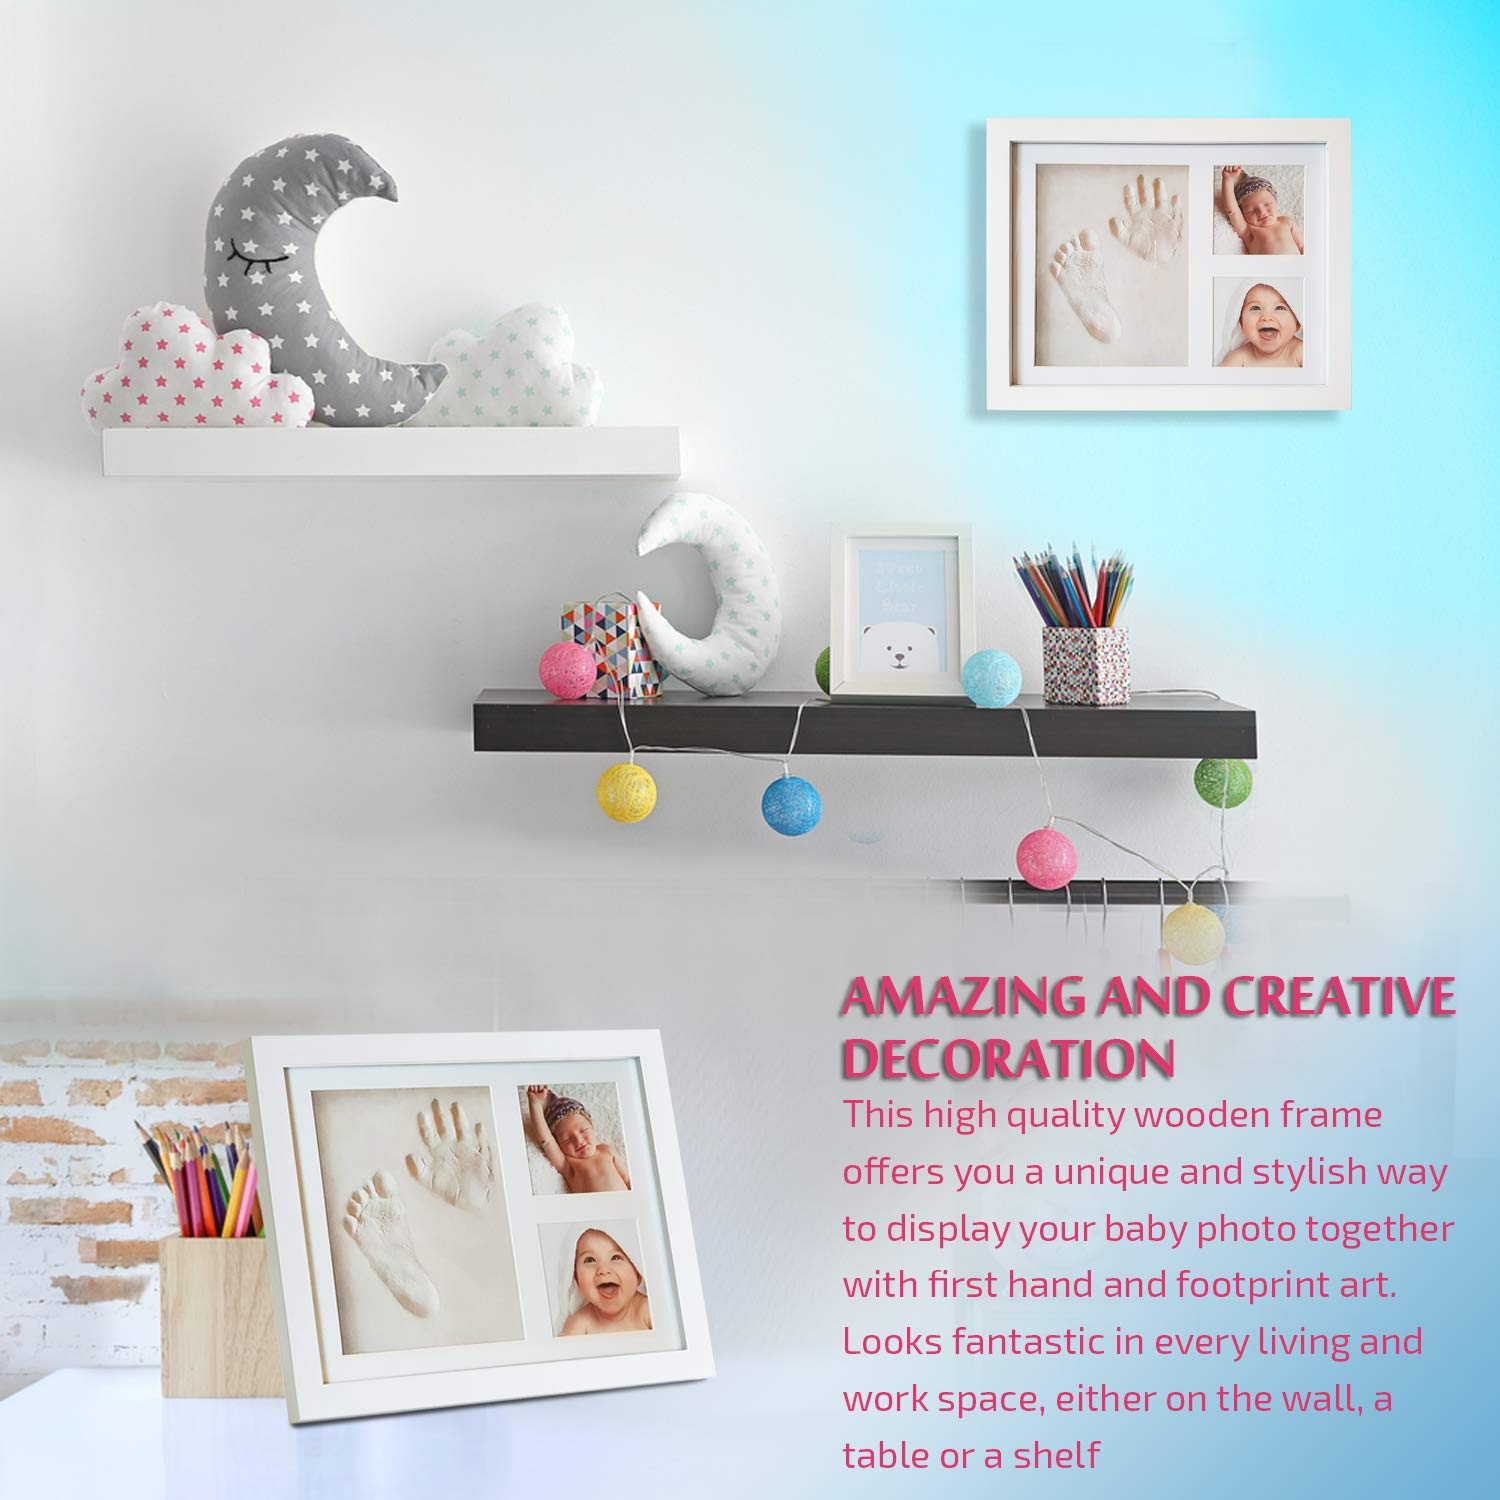 Personalized Shower Party Gift Baby Handprint and Footprint Picture Frame Kit by ZaniFlip Newborn Girl or Boy diy photos imprint keepsake set White Wooden Framing and Non Toxic Clay Glass Cover